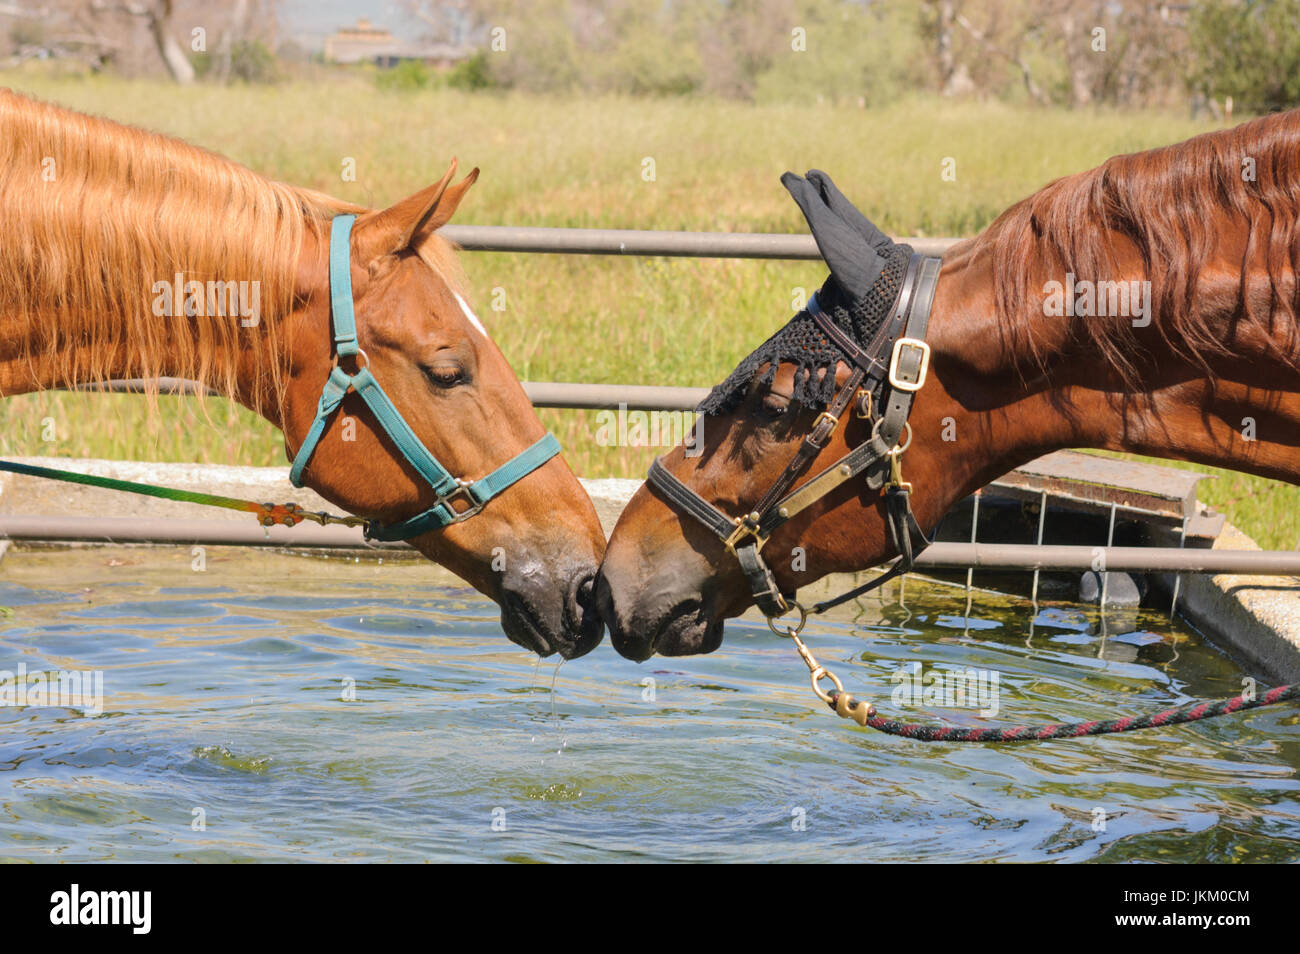 Closeup of two horses nose to nose at a water trough - Stock Image